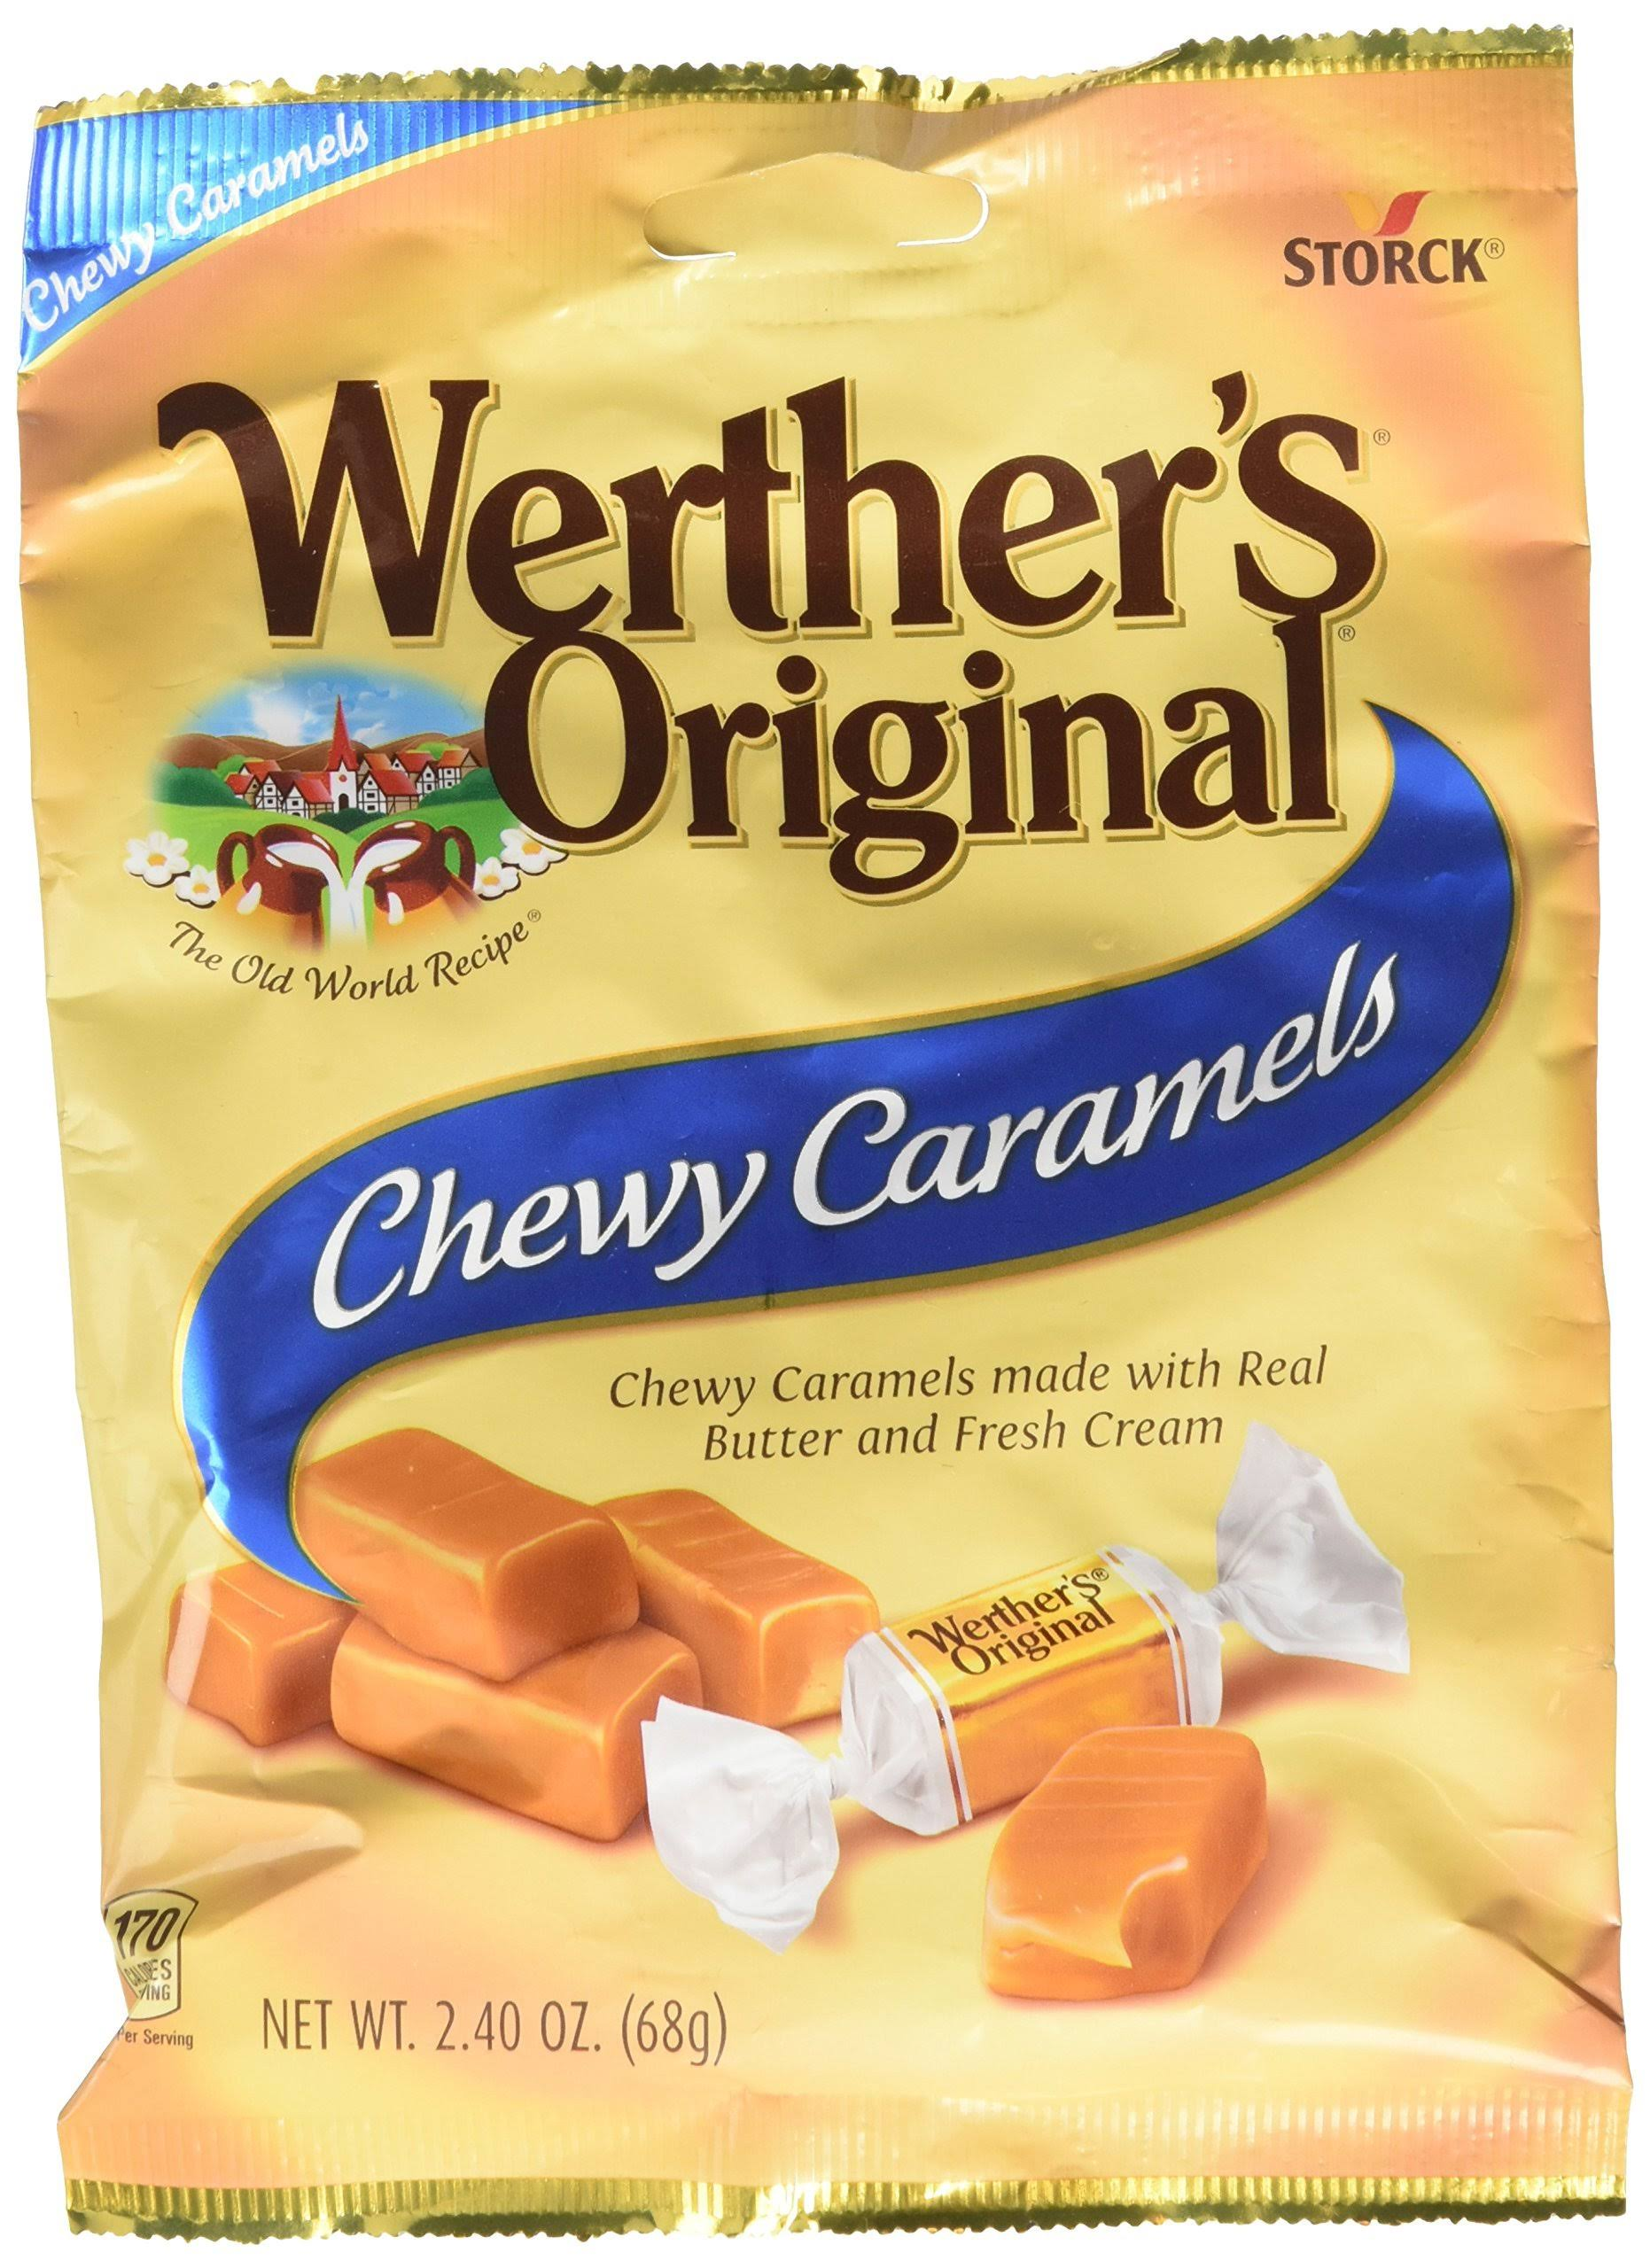 Werther's Original Chewy Caramel Candy - 2.40oz